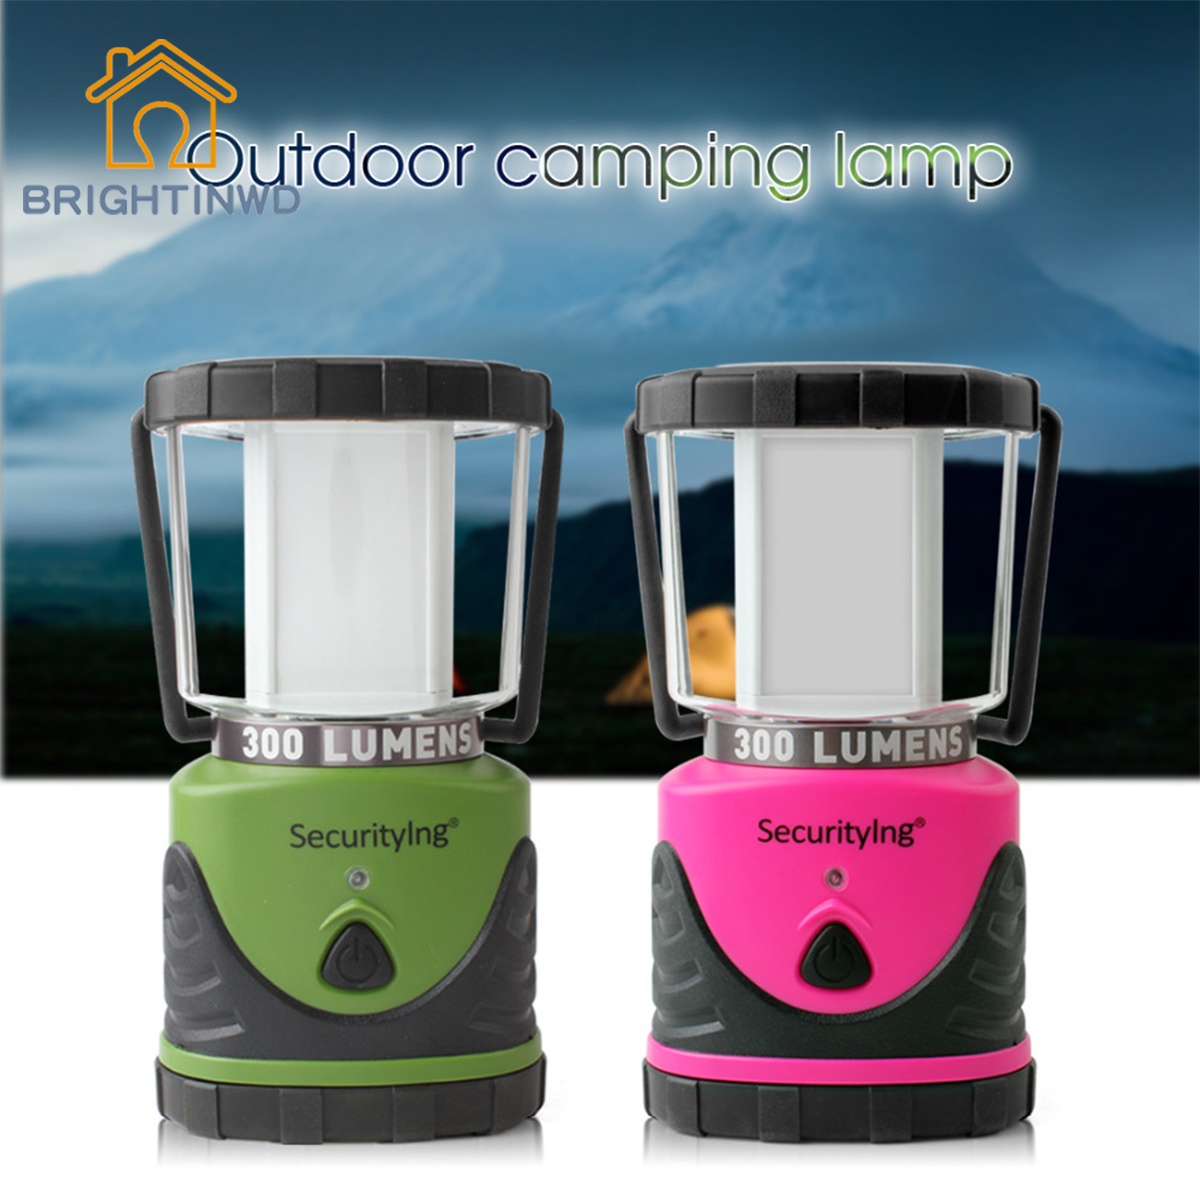 BRIGHTINWD Outdoor LED Camping Light Ultra Bright Waterproof Hanging Tent Lamp for Hiking Fishing Emergencies Portable Lantern